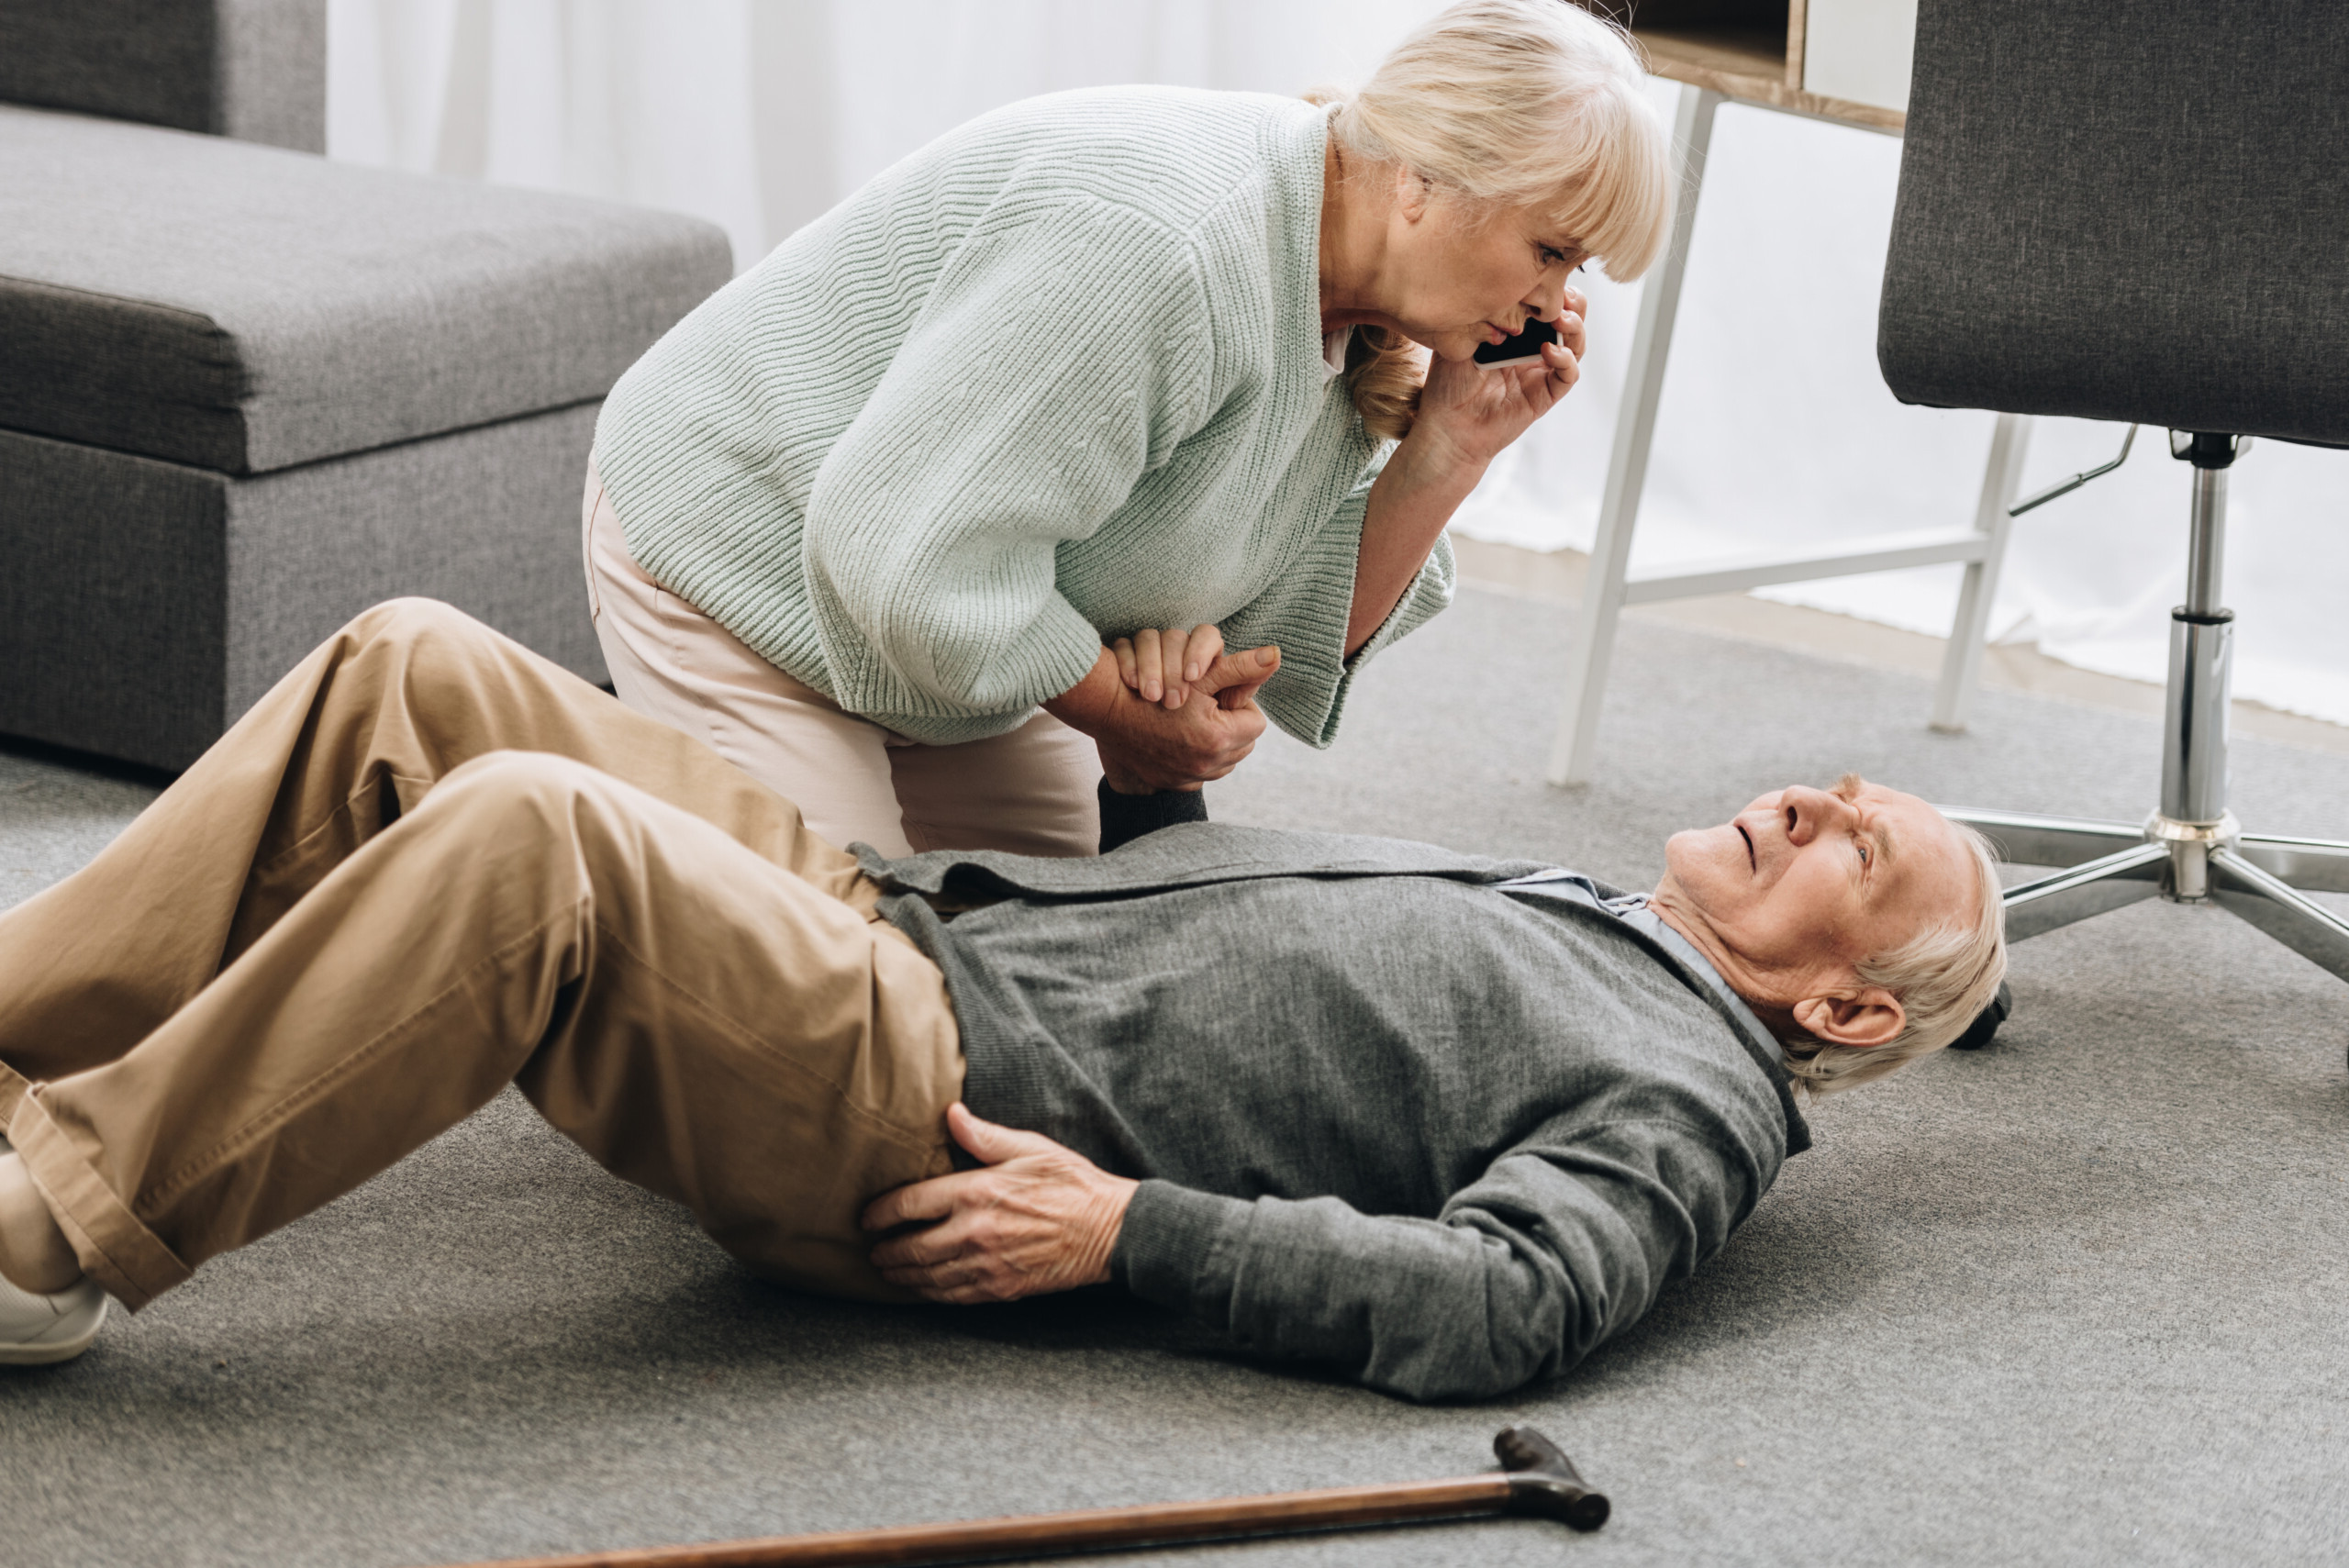 Why Is a High Fall Risk Often Denied by the Elderly?